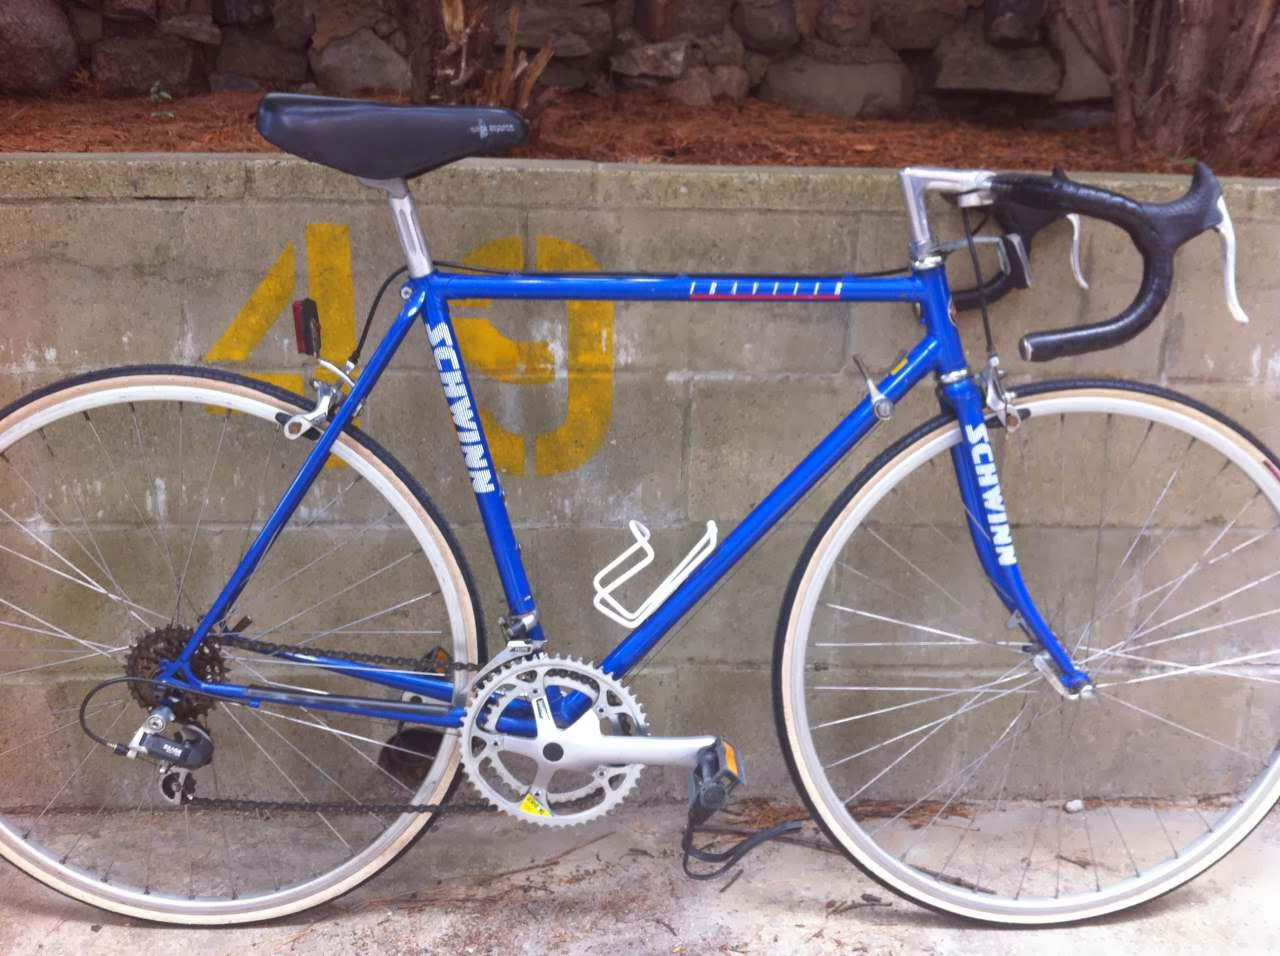 Bike Boom refurbished bikes: 1989 Schwinn Traveler Road bike